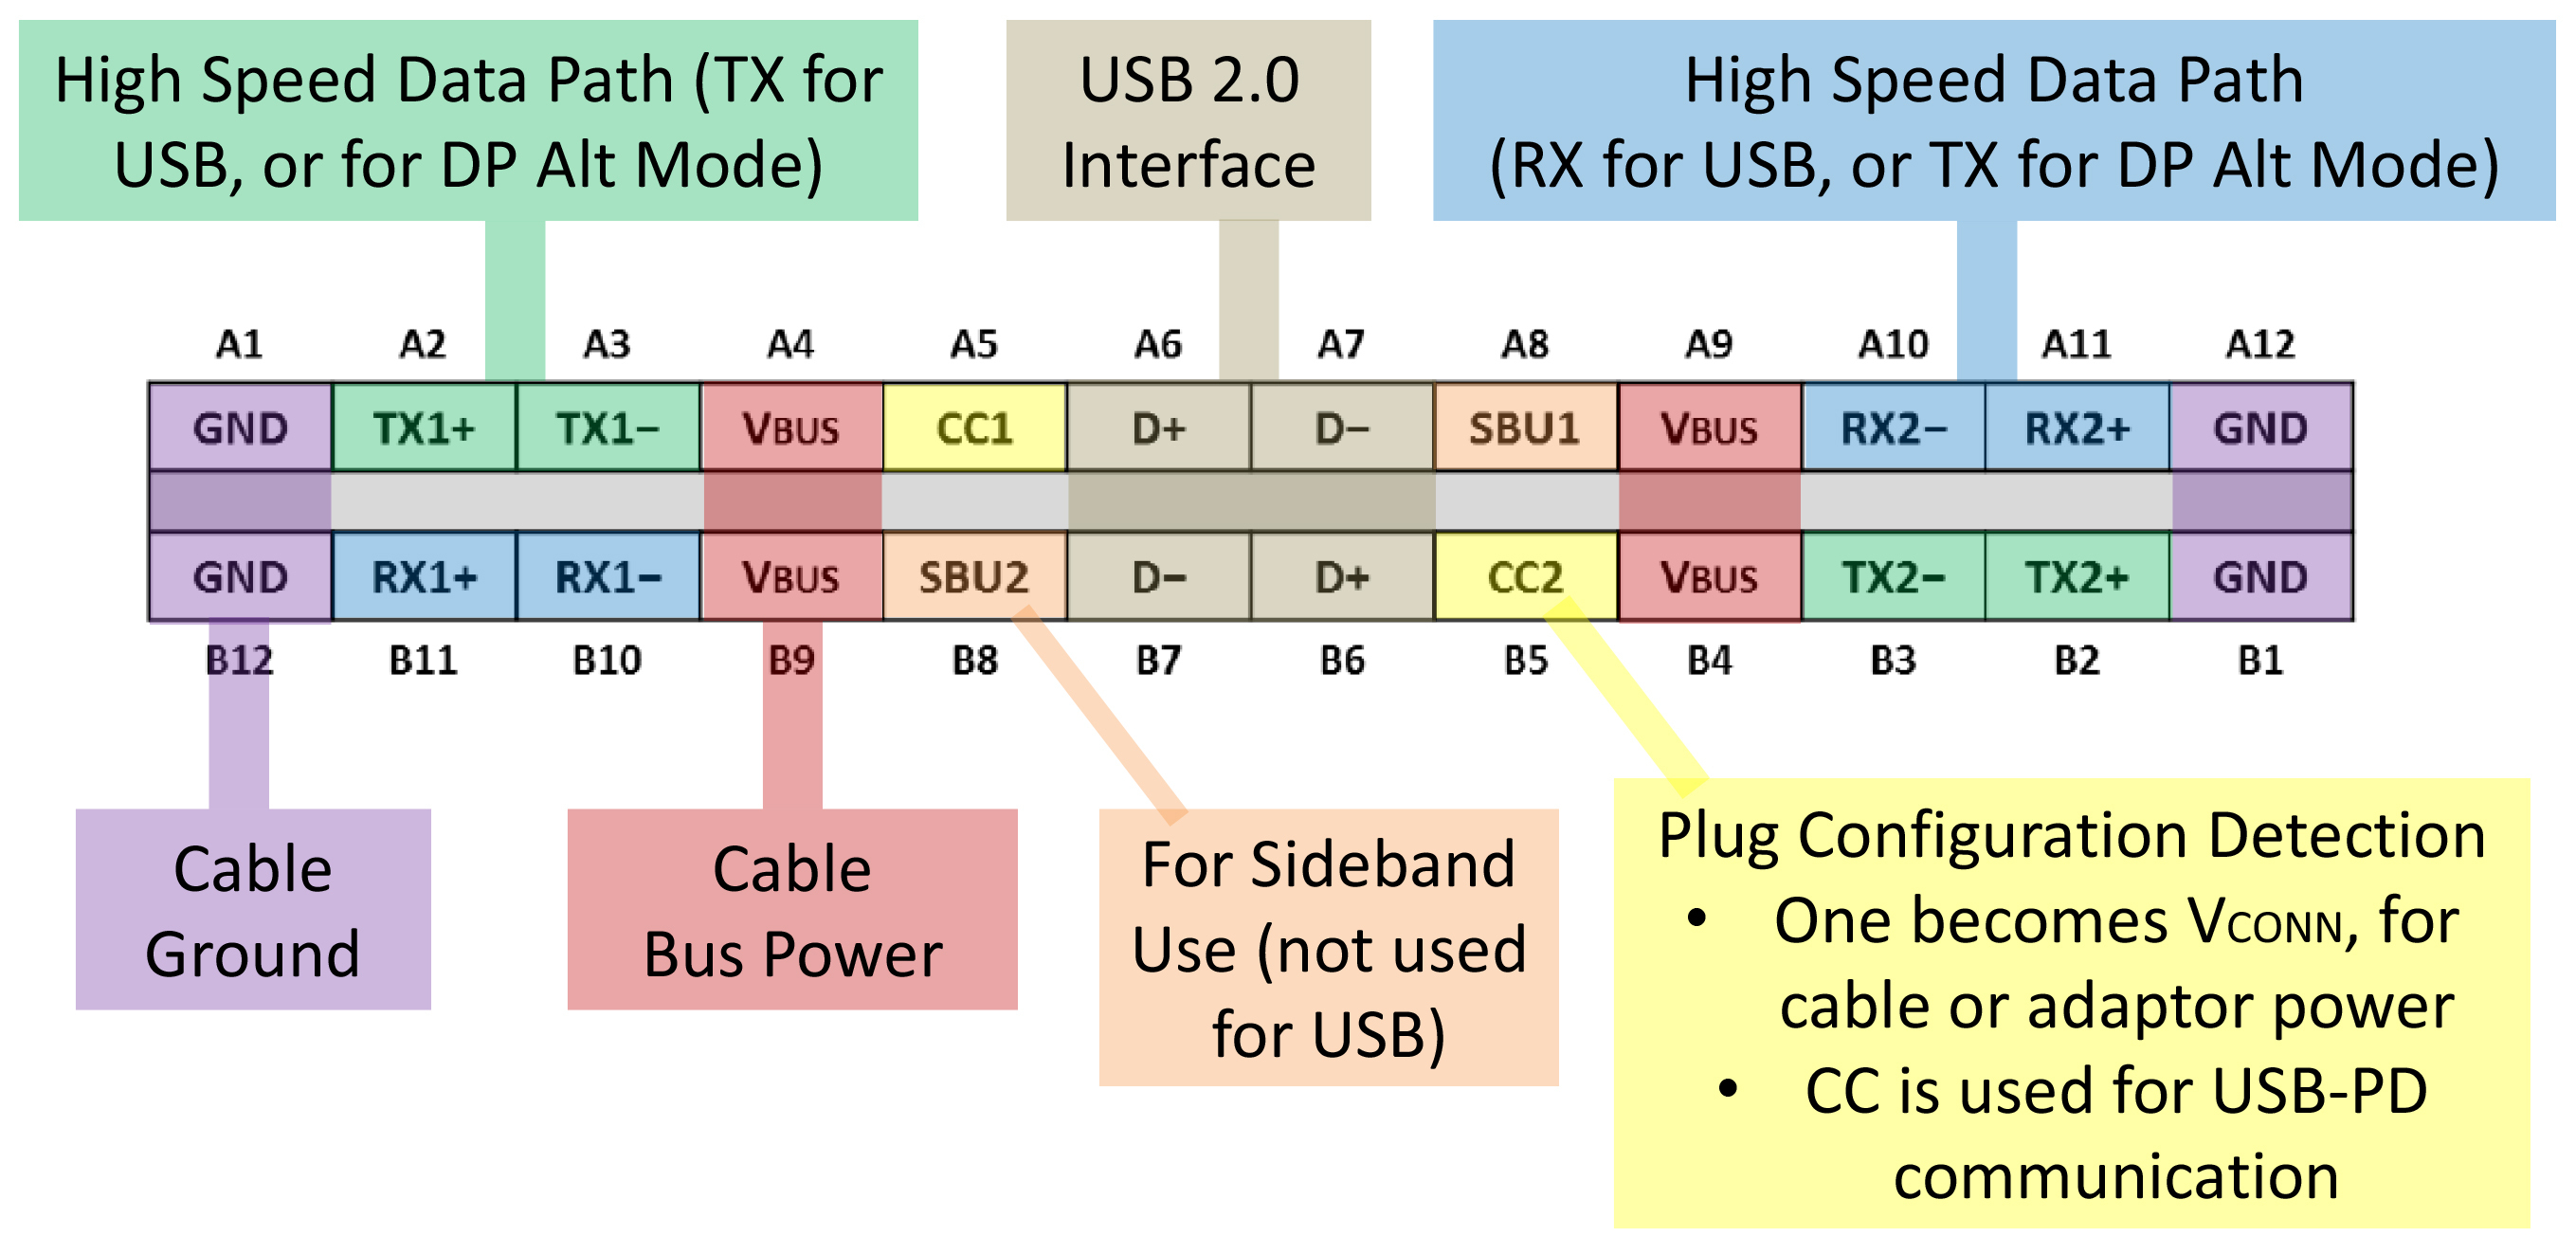 chord usb wiring diagram manual e books lightning connector to Lightning Causing Thunder Diagram chord usb wiring diagram manual e books \u2013 lightning connector to usb wiring diagram